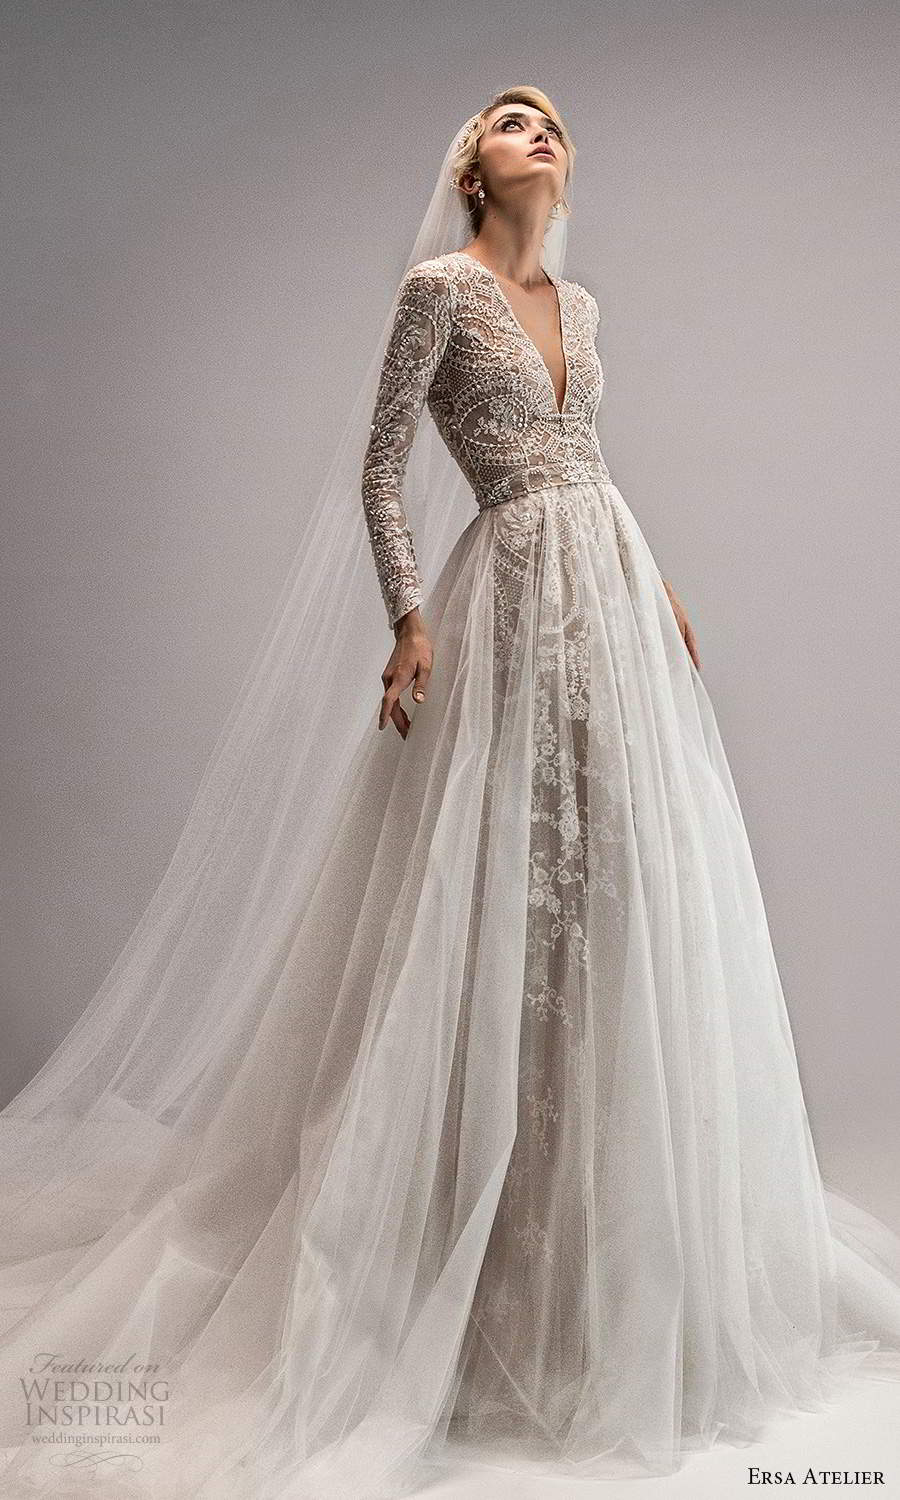 ersa atelier spring 2021 bridal long sleeves plunging v neckline fully embellished a line wedding dress chapel train ball gown overskirt (9) mv